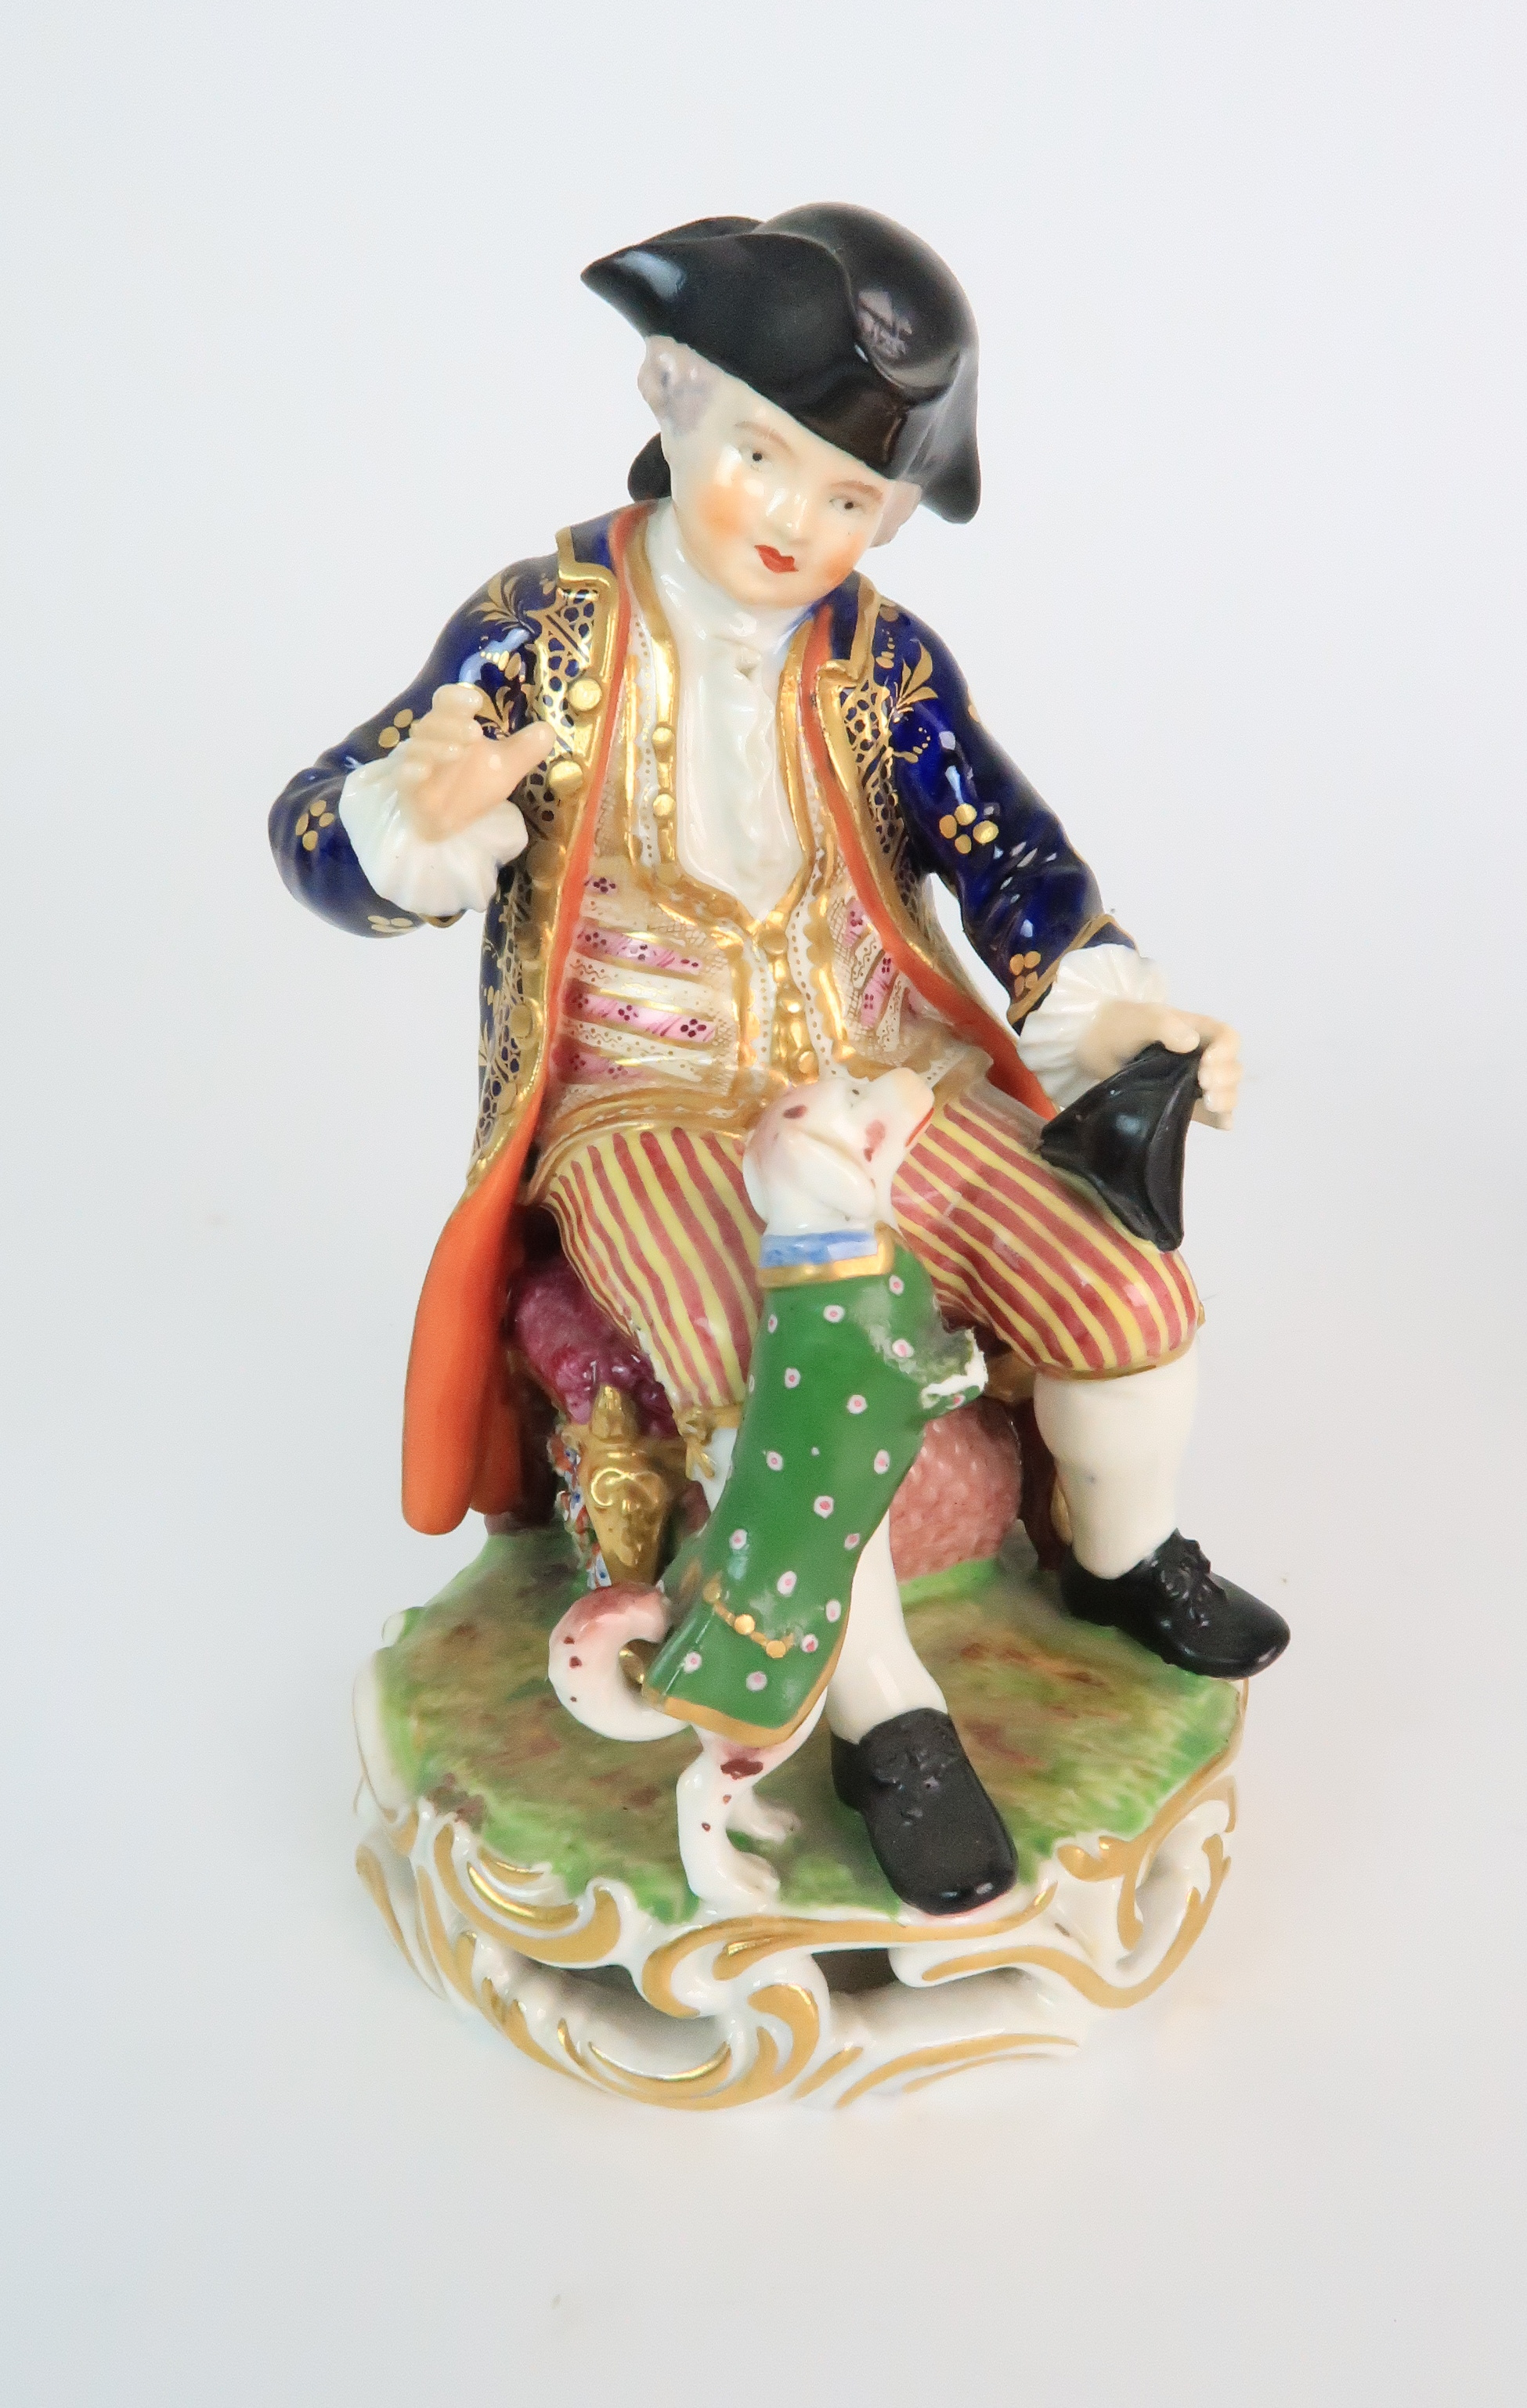 A PAIR OF DERBY PORCELAIN FIGURES early 19th century, modelled as a seated boy playing with a dog - Image 11 of 12